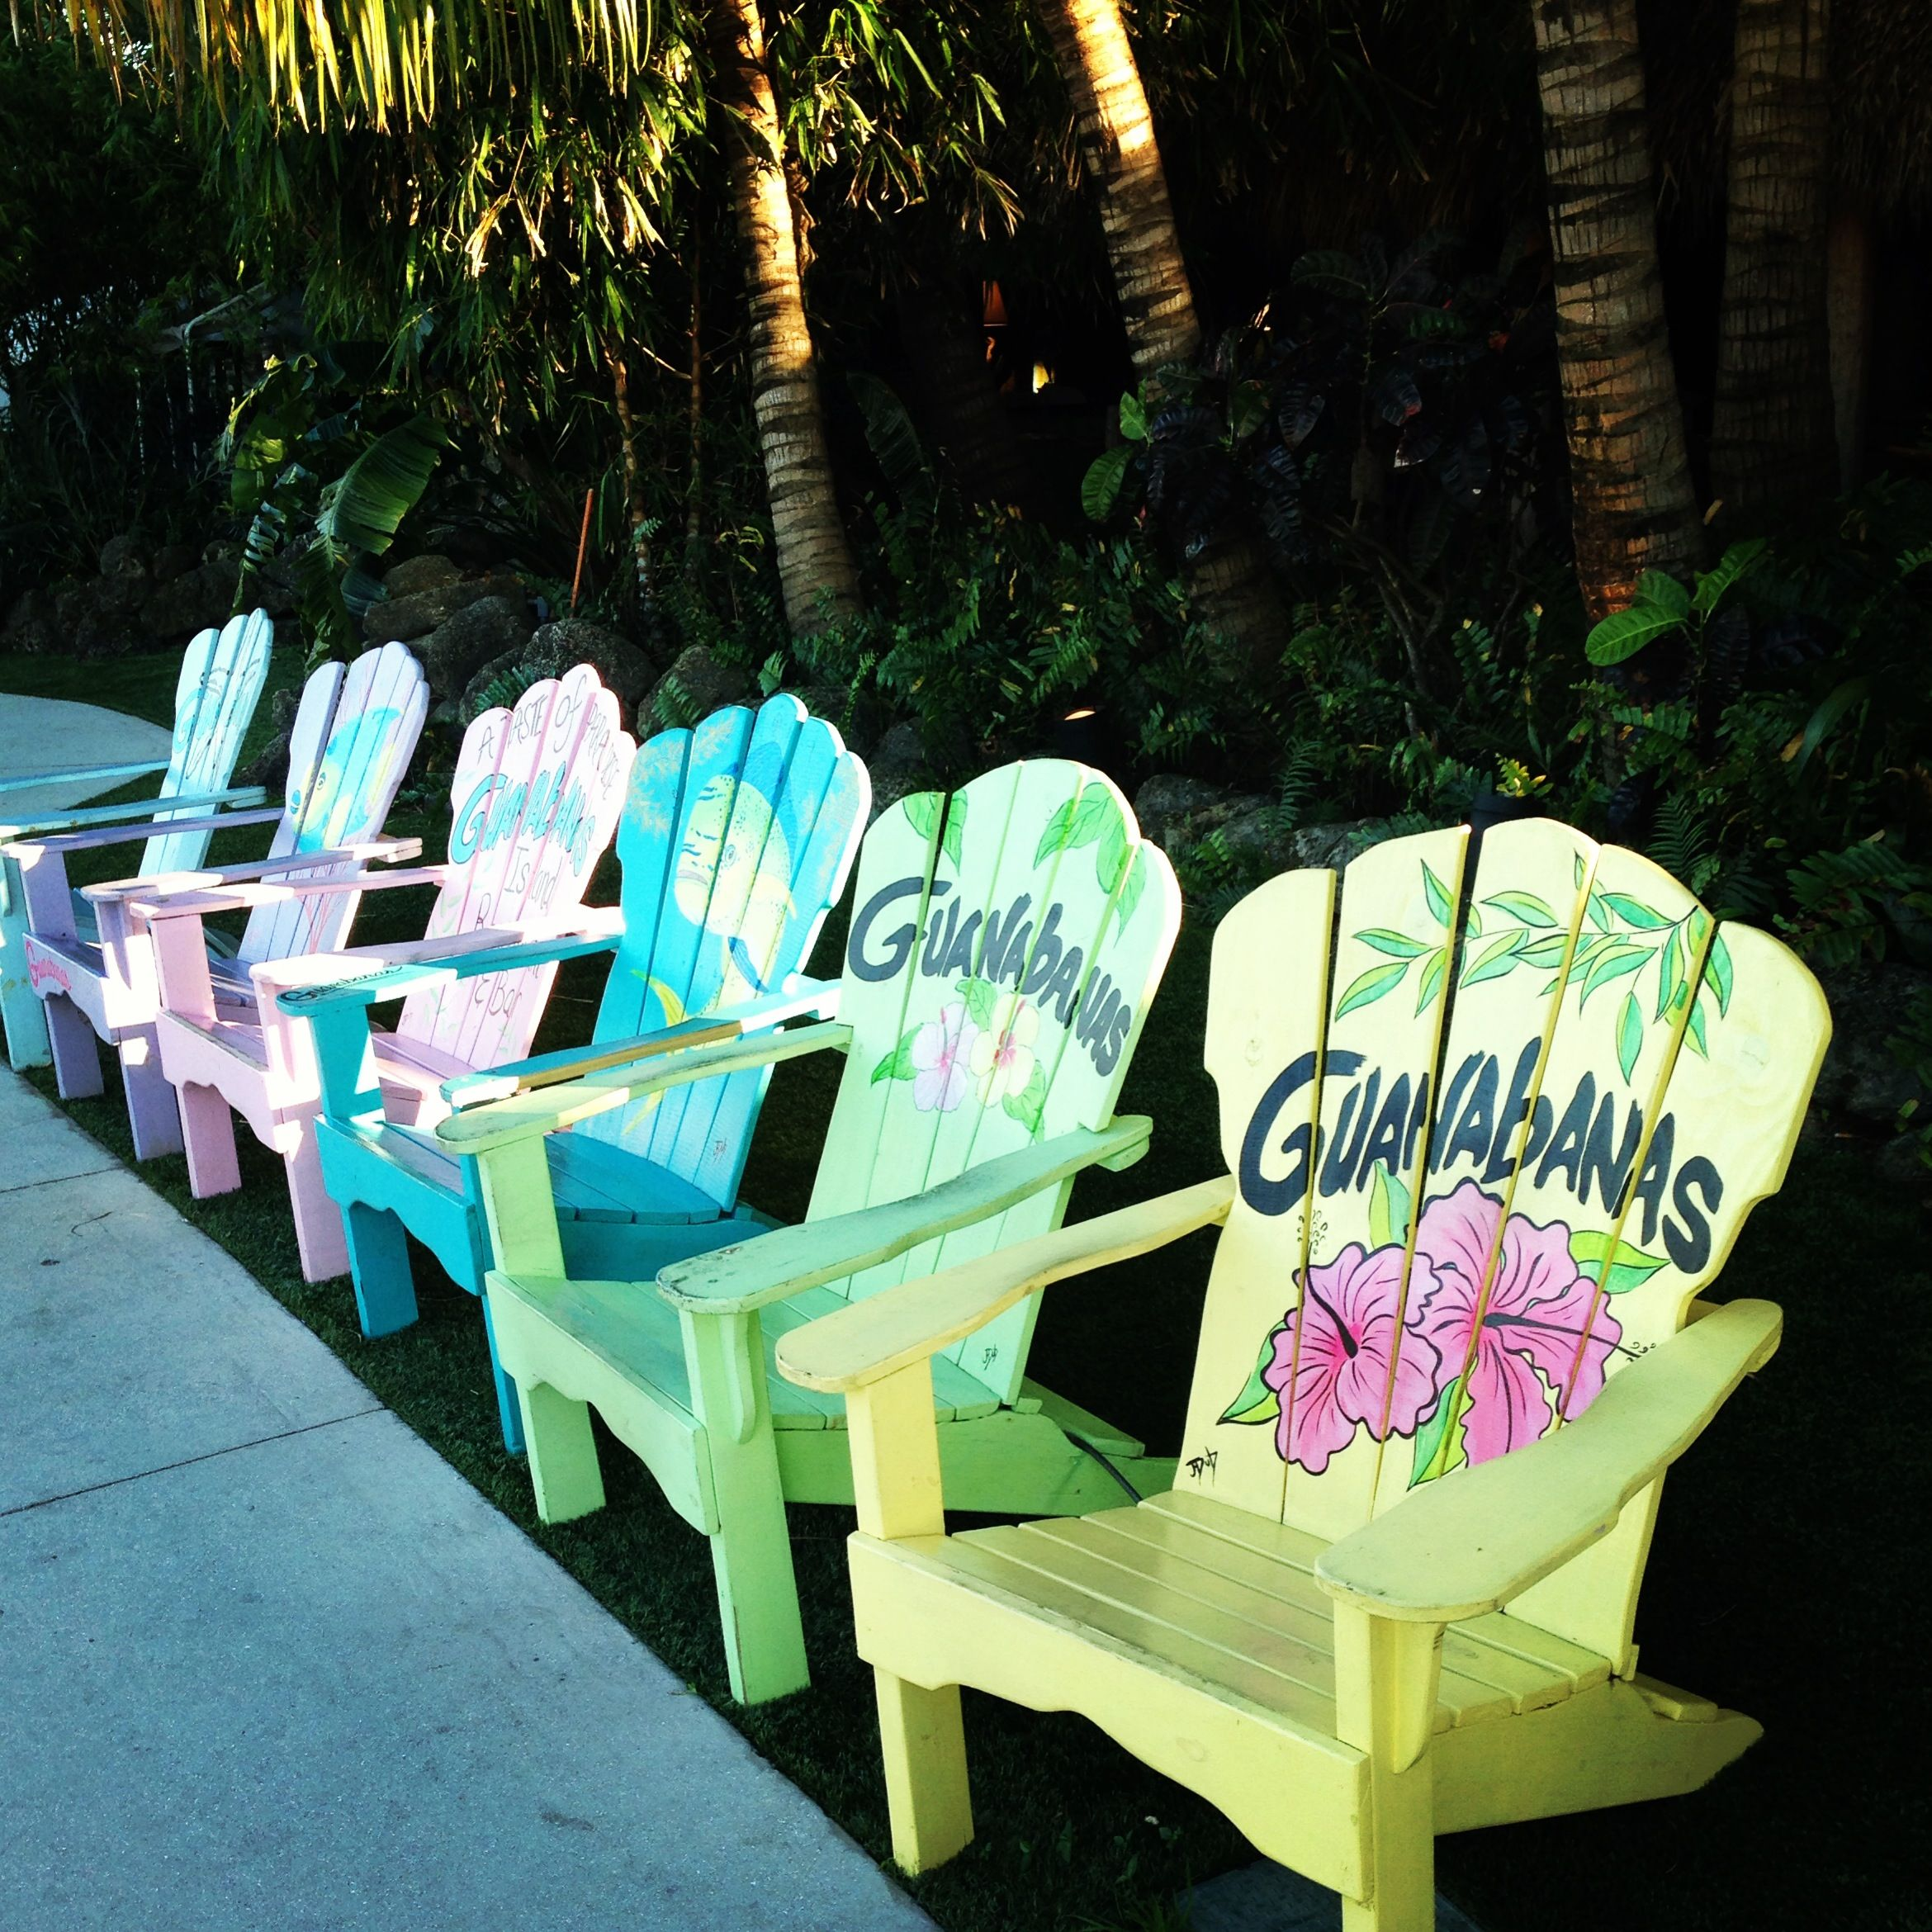 Patio Furniture Jupiter Fl: No Better Chairs To Relax And Grab Some Photos! Guanabanas